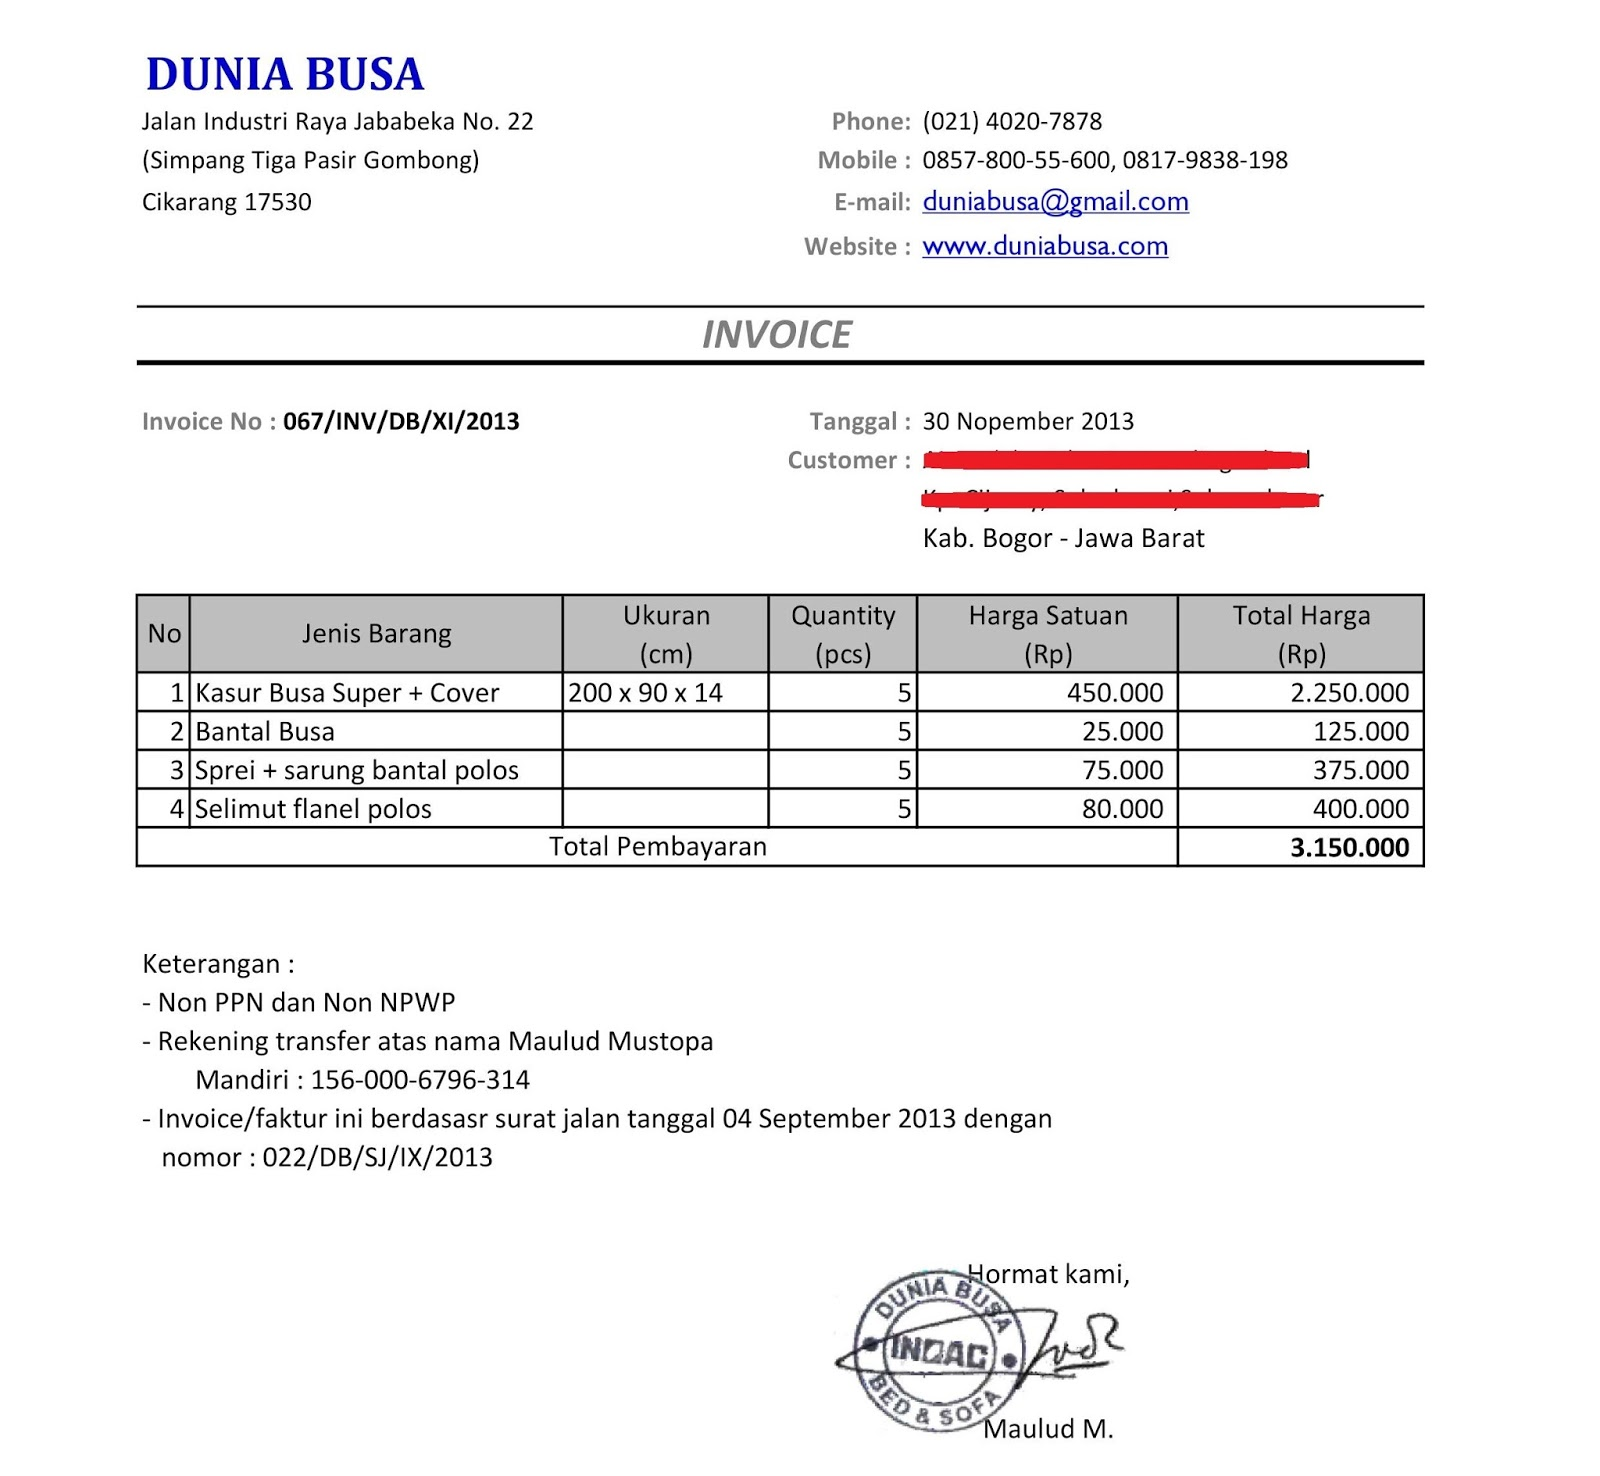 Aldiablosus  Sweet Free Invoice Online  Create Invoice Online  Invoice Template  With Interesting Contoh Format Invoice Atau Surat Tagihan  Brankas Arsip  Free Invoice Online With Astonishing Receipt Of Car Sale Also Medicare Receipt In Addition Acknowledgement Of Receipt Email And Asda Check Your Receipt As Well As Dental Receipt Sample Additionally Read Receipt In Outlook  From Sklepco With Aldiablosus  Interesting Free Invoice Online  Create Invoice Online  Invoice Template  With Astonishing Contoh Format Invoice Atau Surat Tagihan  Brankas Arsip  Free Invoice Online And Sweet Receipt Of Car Sale Also Medicare Receipt In Addition Acknowledgement Of Receipt Email From Sklepco